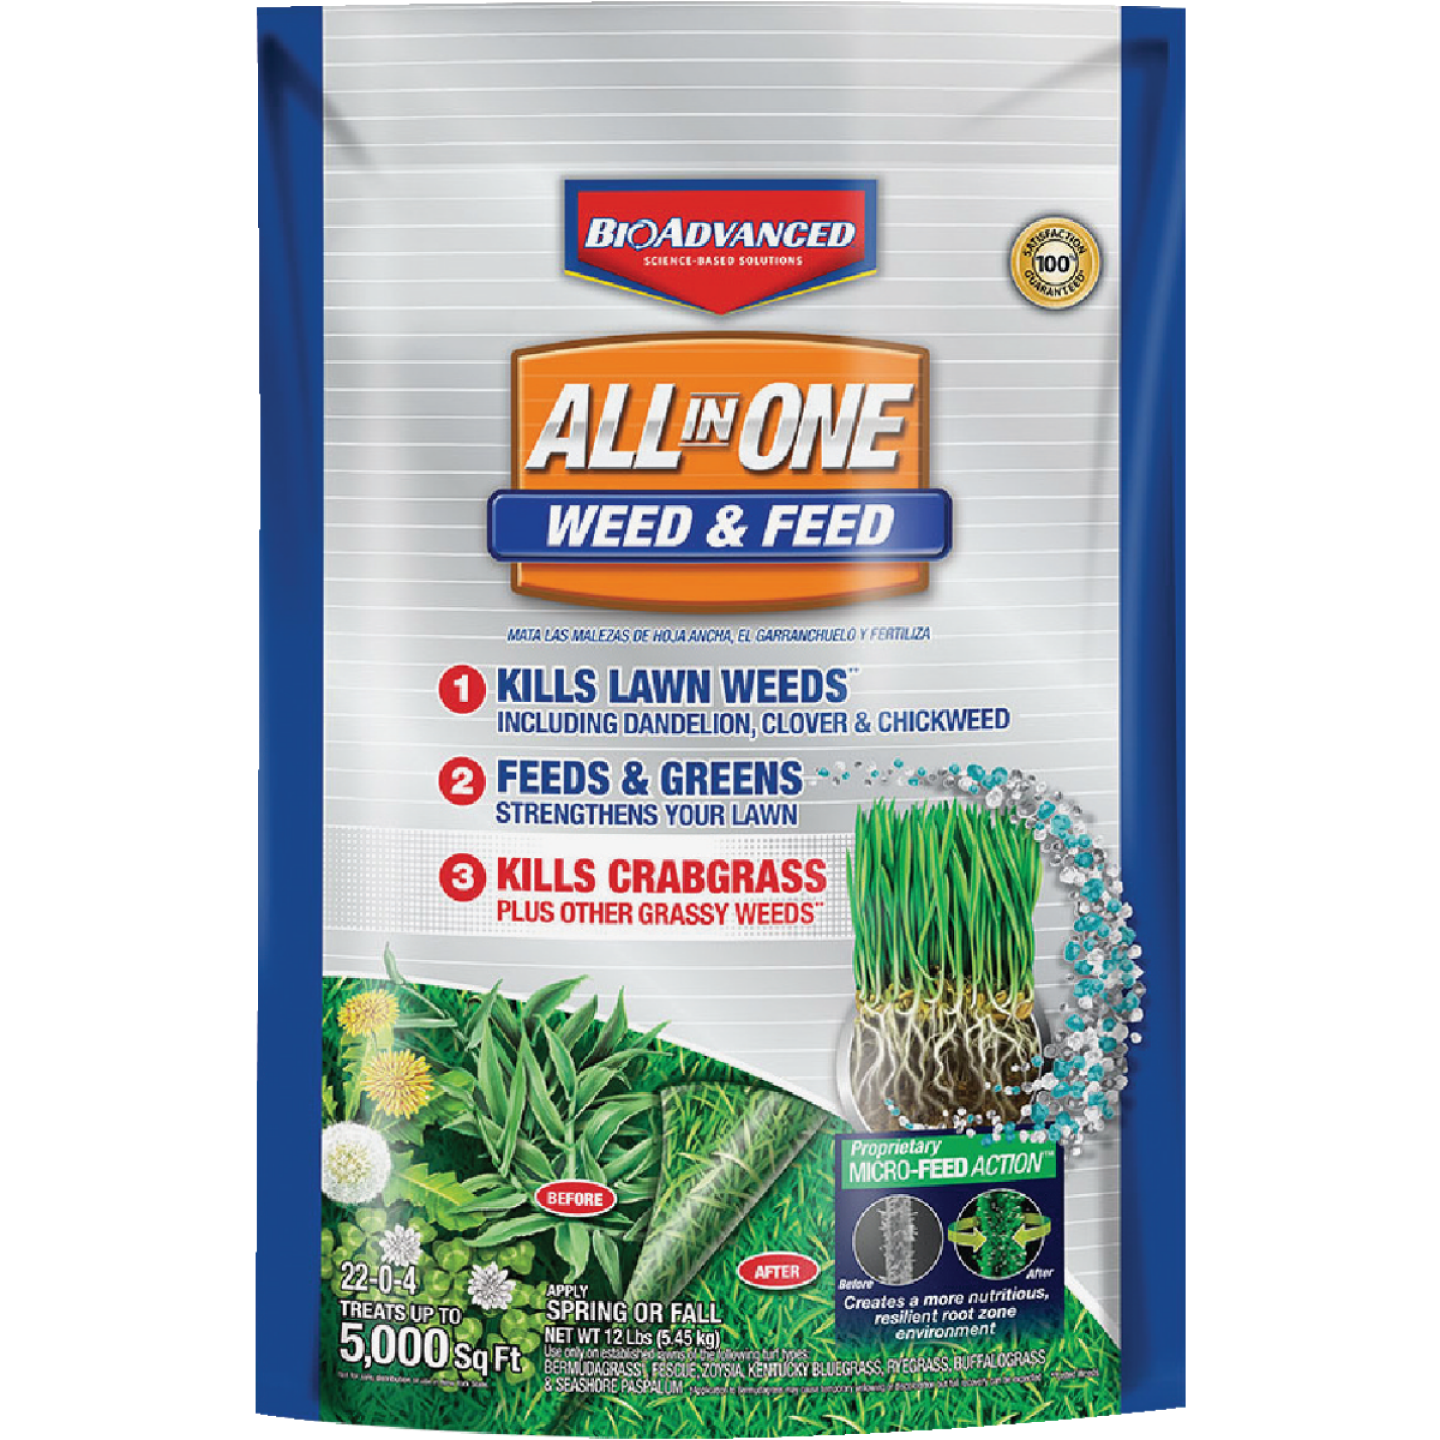 BioAdvanced All-In-1 12 Lb. 5000 Sq. Ft. 22-0-4 Weed & Feed Lawn Fertilizer with Weed Killer Image 1